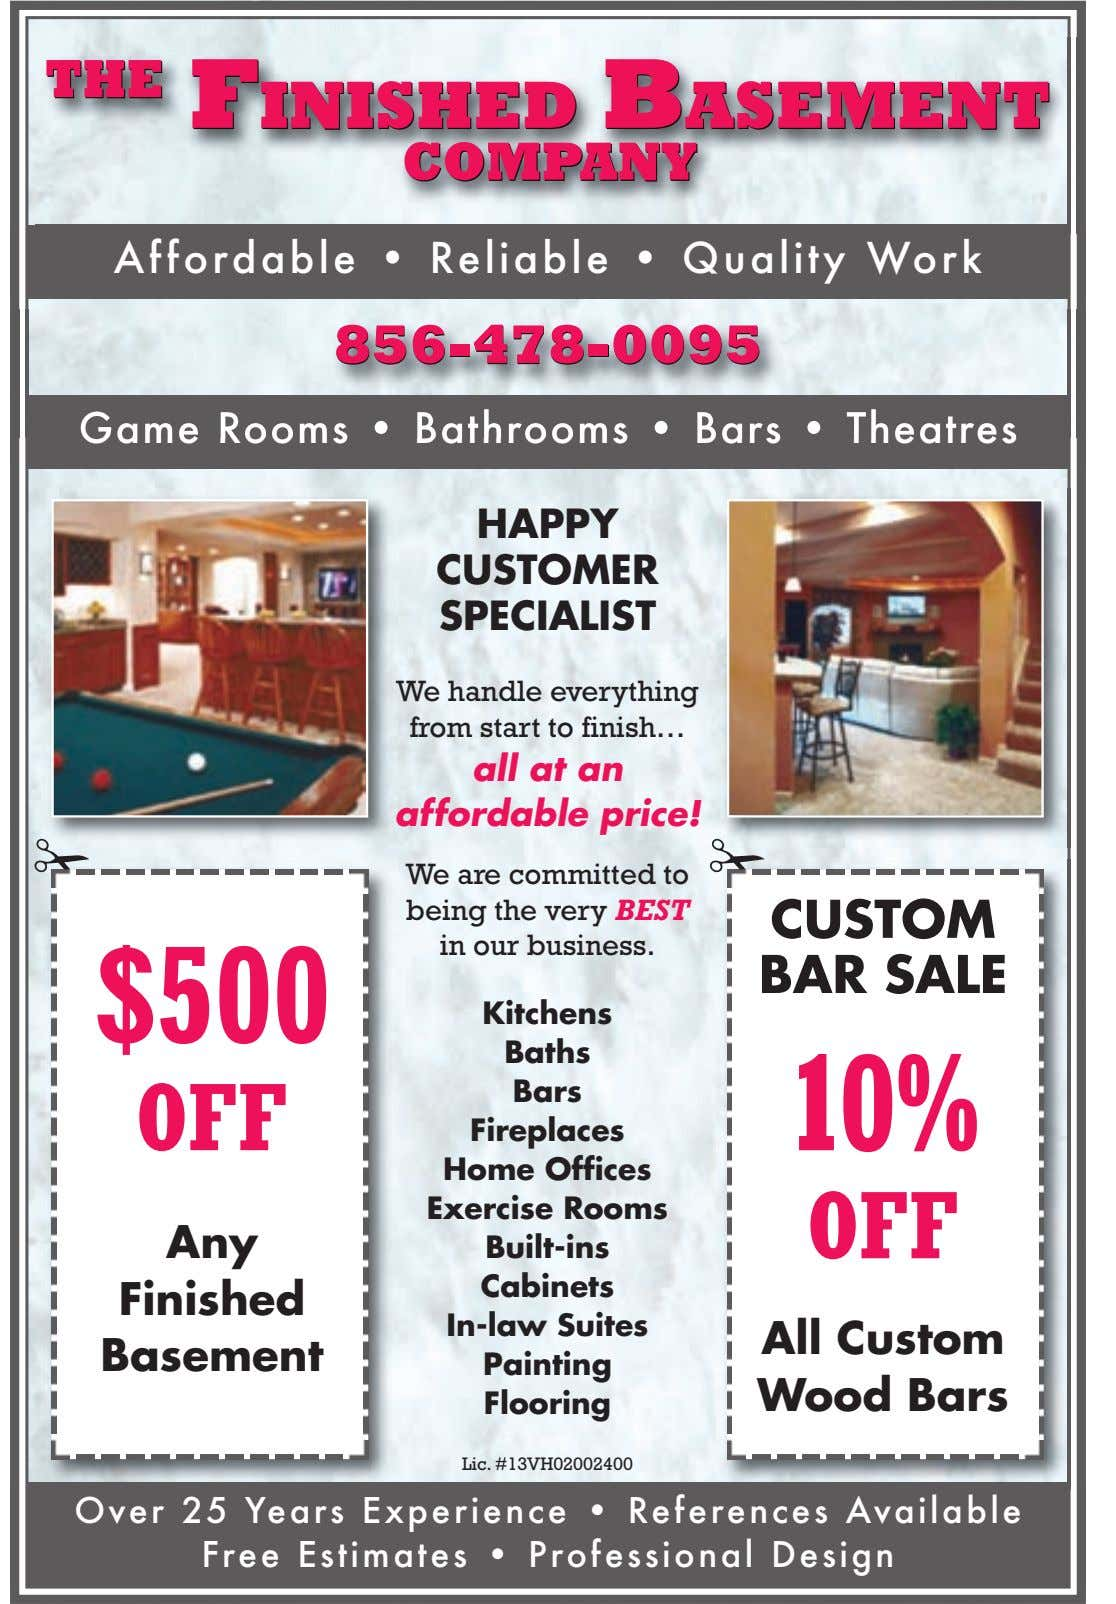 Affordable • Reliable • Quality Work 856-478-0095856-478-0095 Game Rooms • Bathrooms • Bars • Theatres